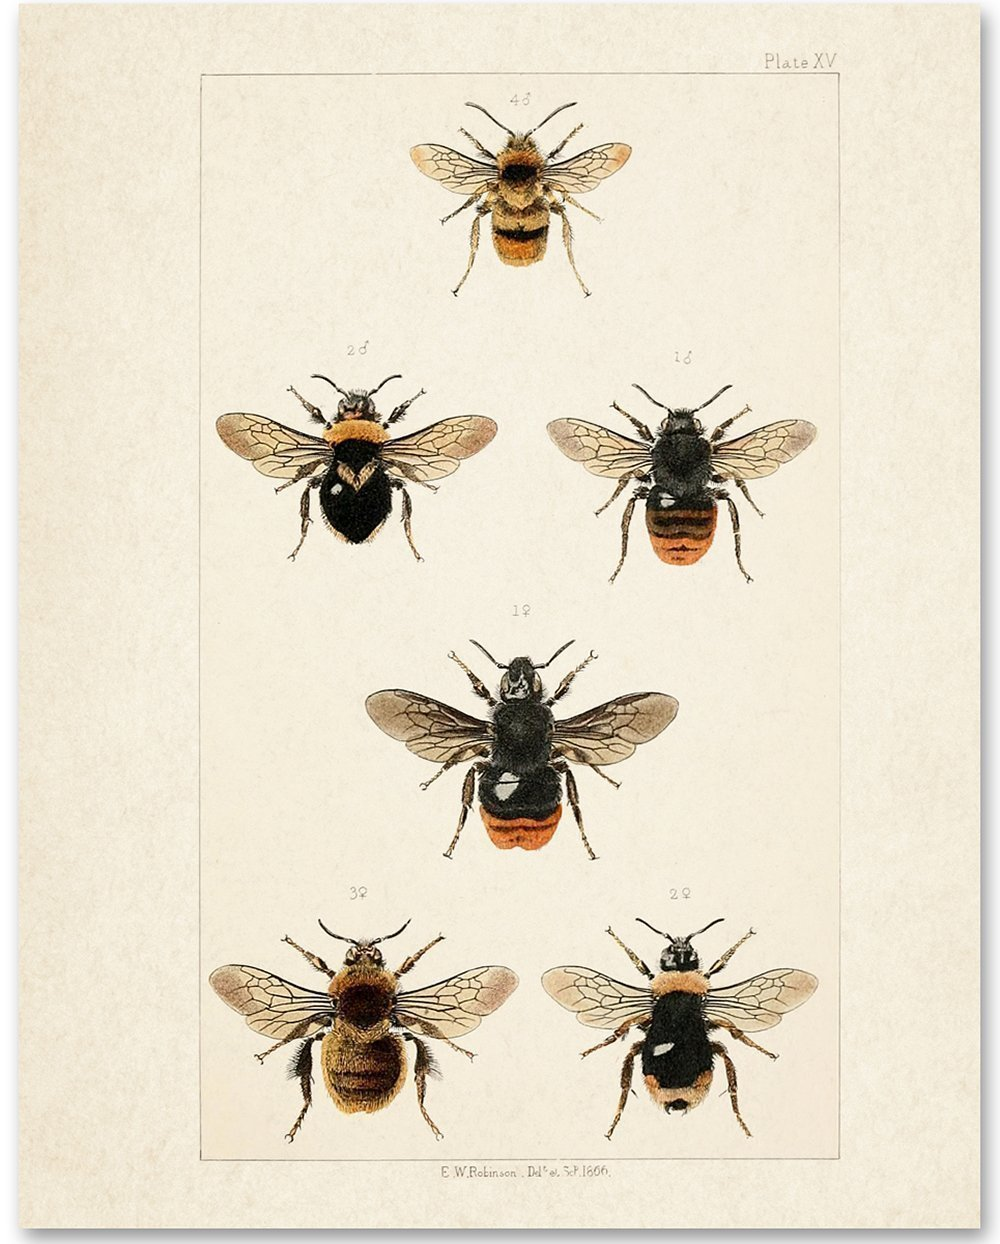 Bees - 11x14 Unframed Art Print - Great Gift for Nature Lovers by Personalized Signs by Lone Star Art